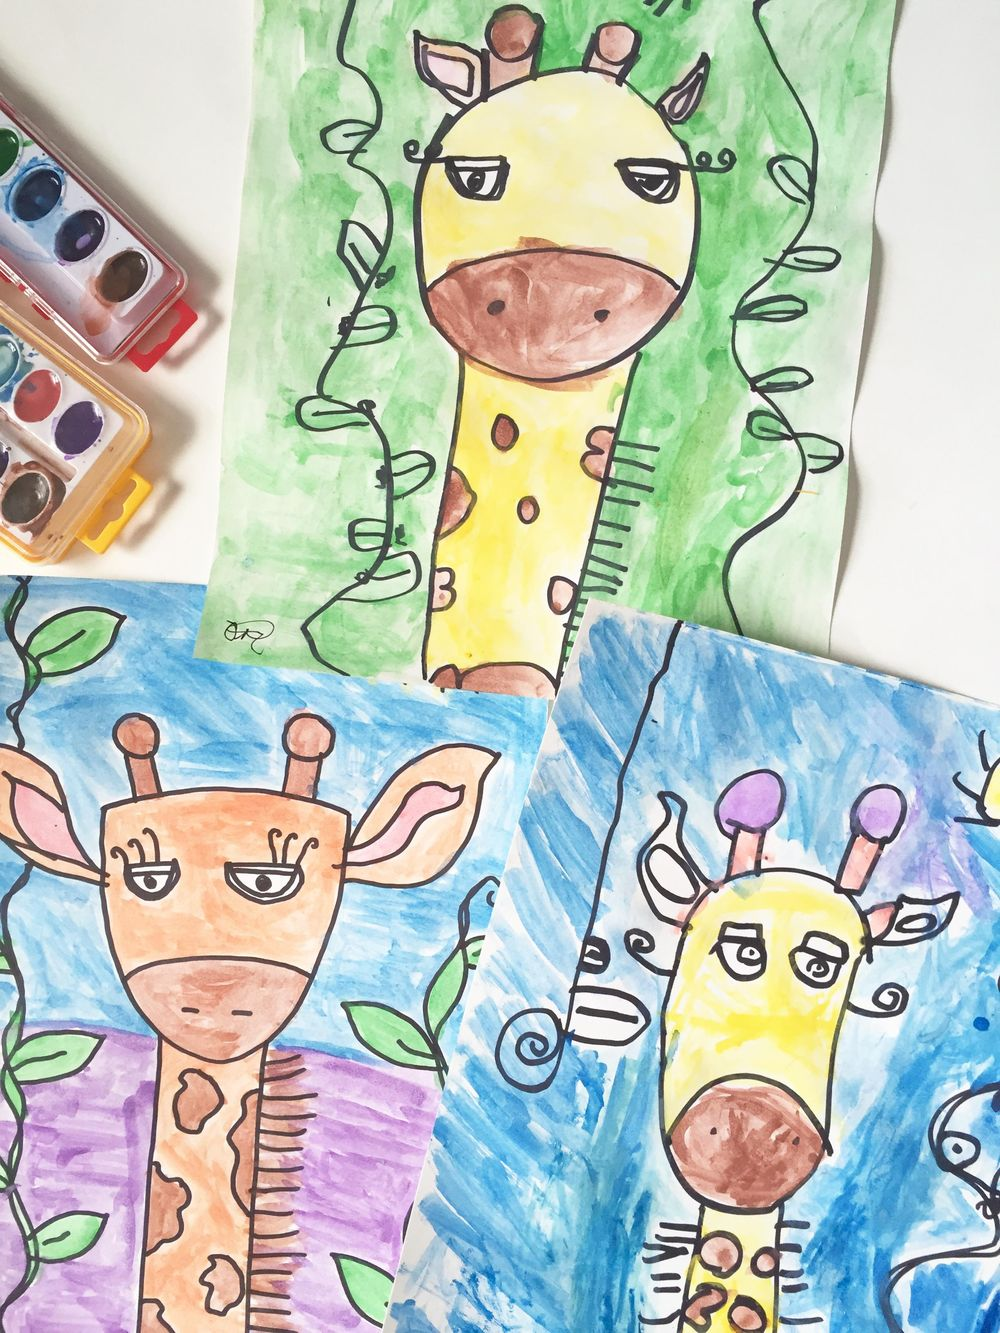 3 Silly Giraffes - image 1 - student project